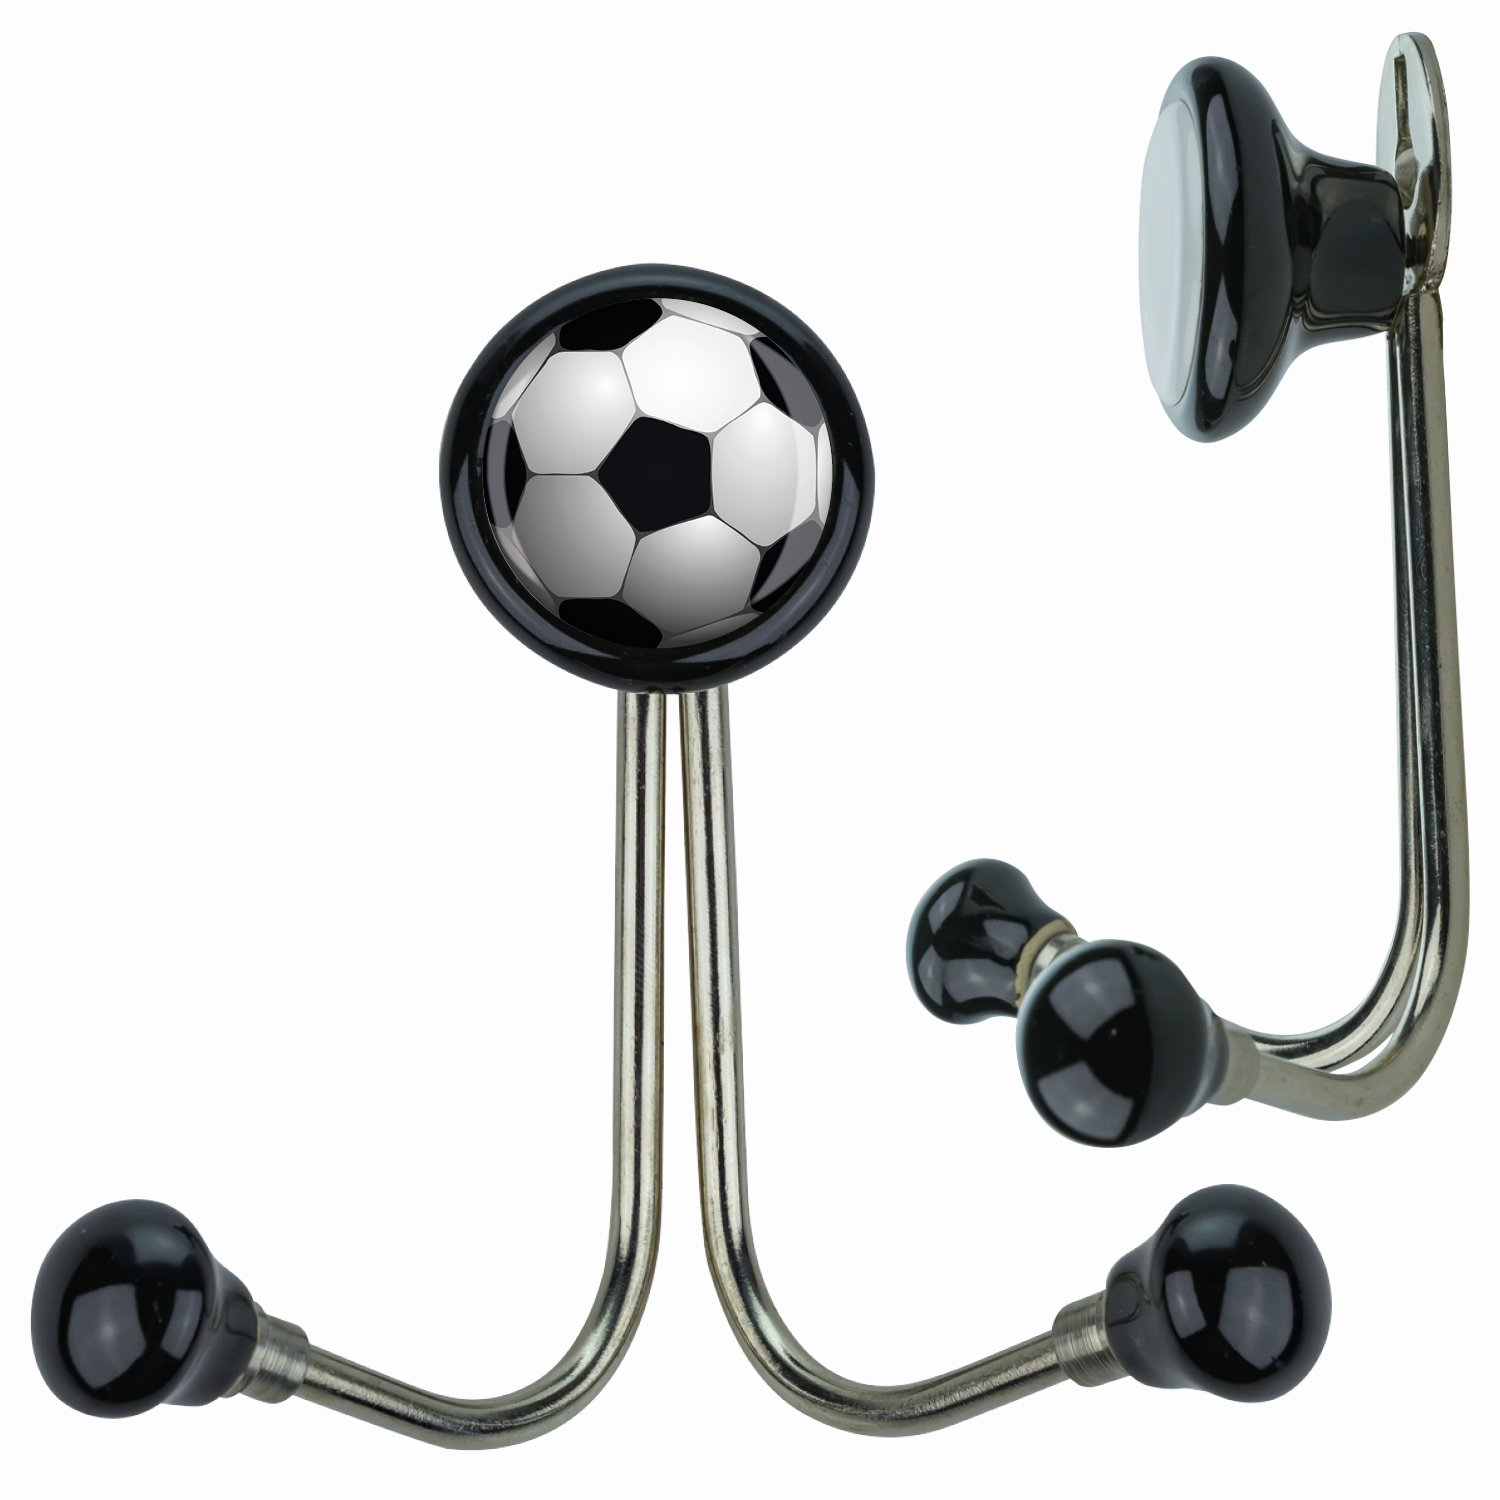 HD03445S Football Coat Hooks Coat Hooks Coat Hooks, Children's, Children's Room Nursery School, All Ages, with Plastischem Effect – Great Designs TV Media Entertainment and many other fun, Bowls and Bright Children's GIC GmbH